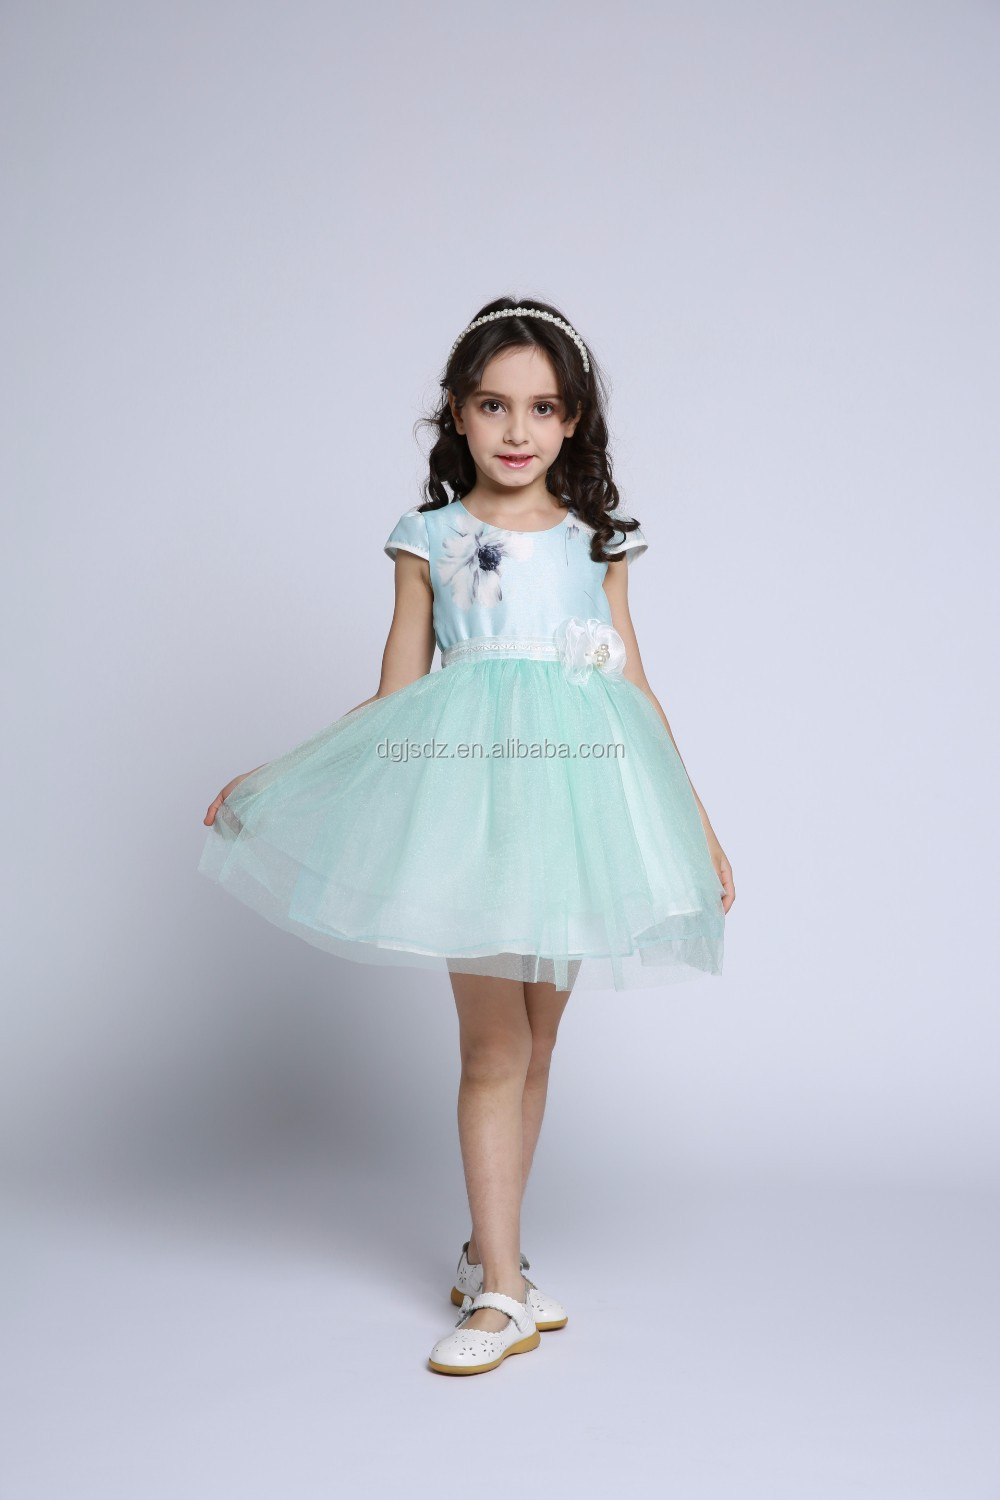 10 Year Olds Girls Dress Kids Girls Evening Dresses Party Dresses ...